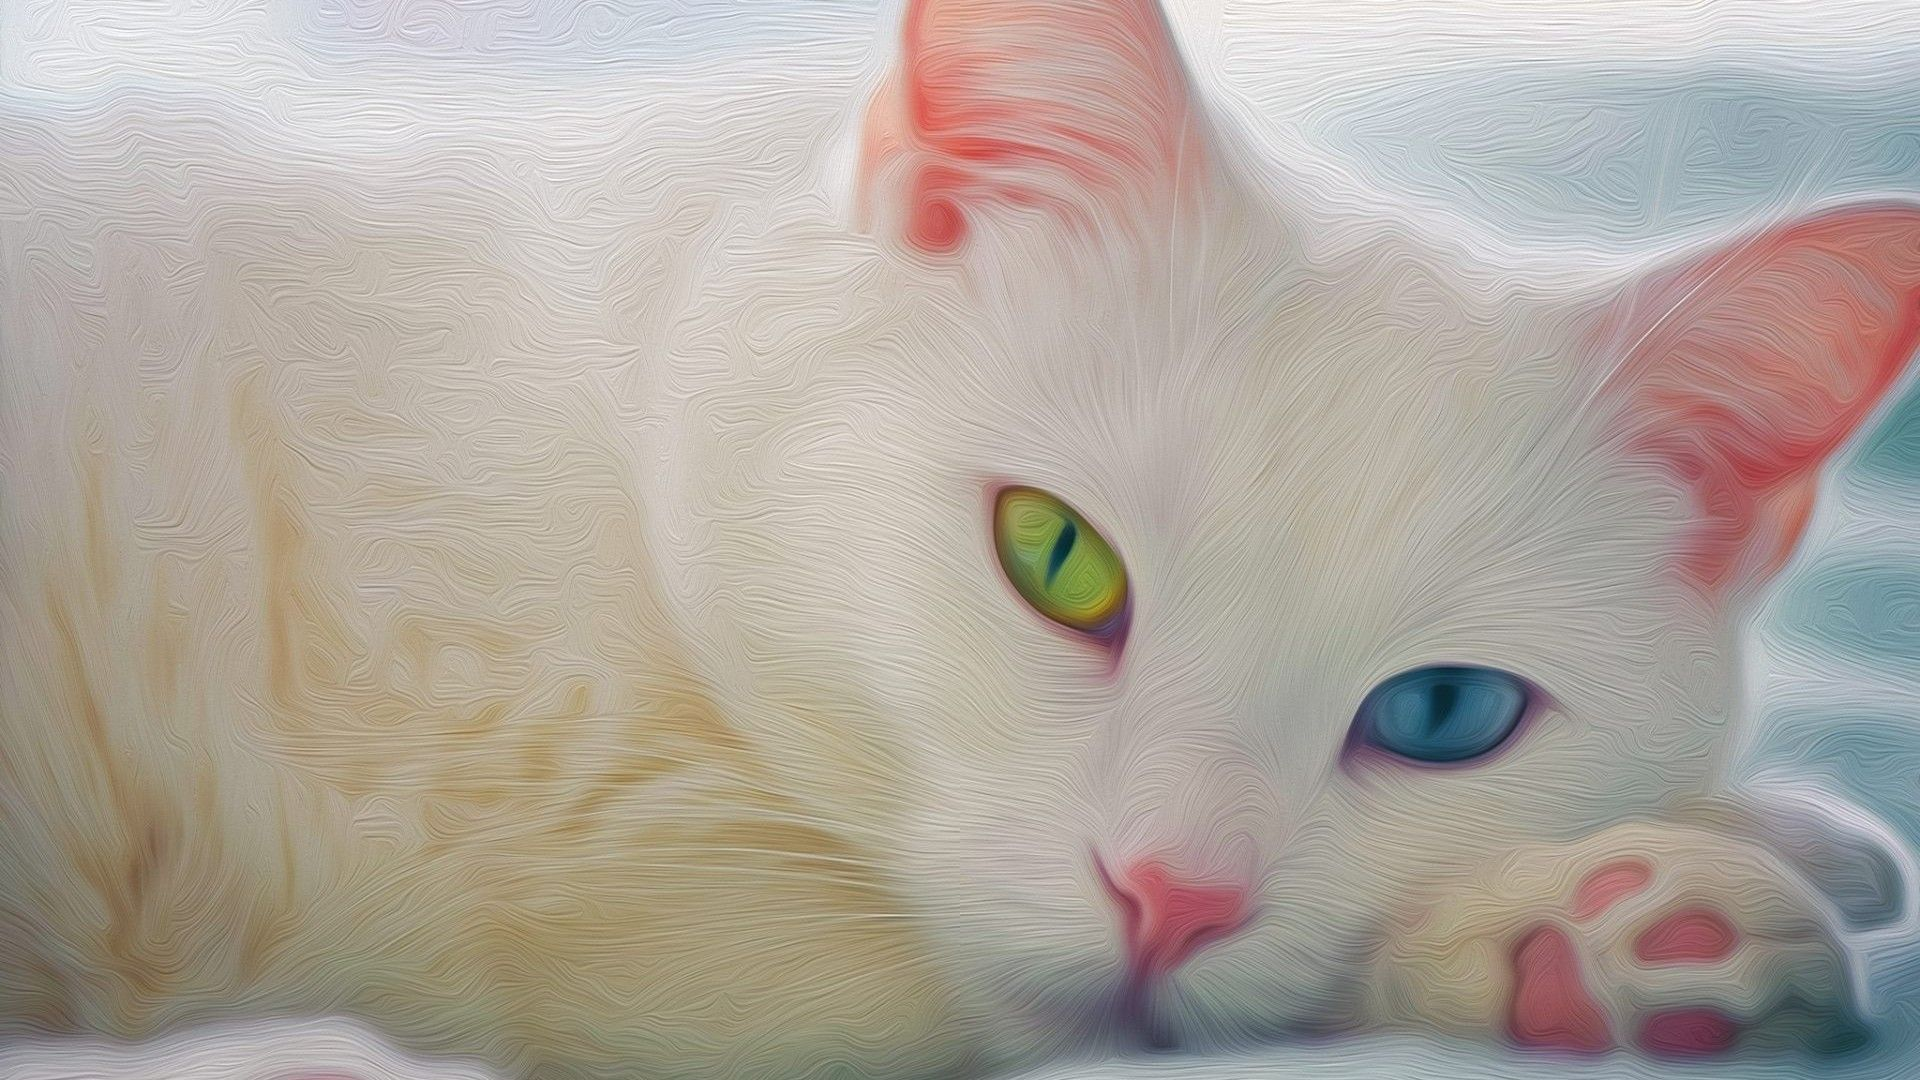 Free Download High Resolution White Catwallpaper For Desktop